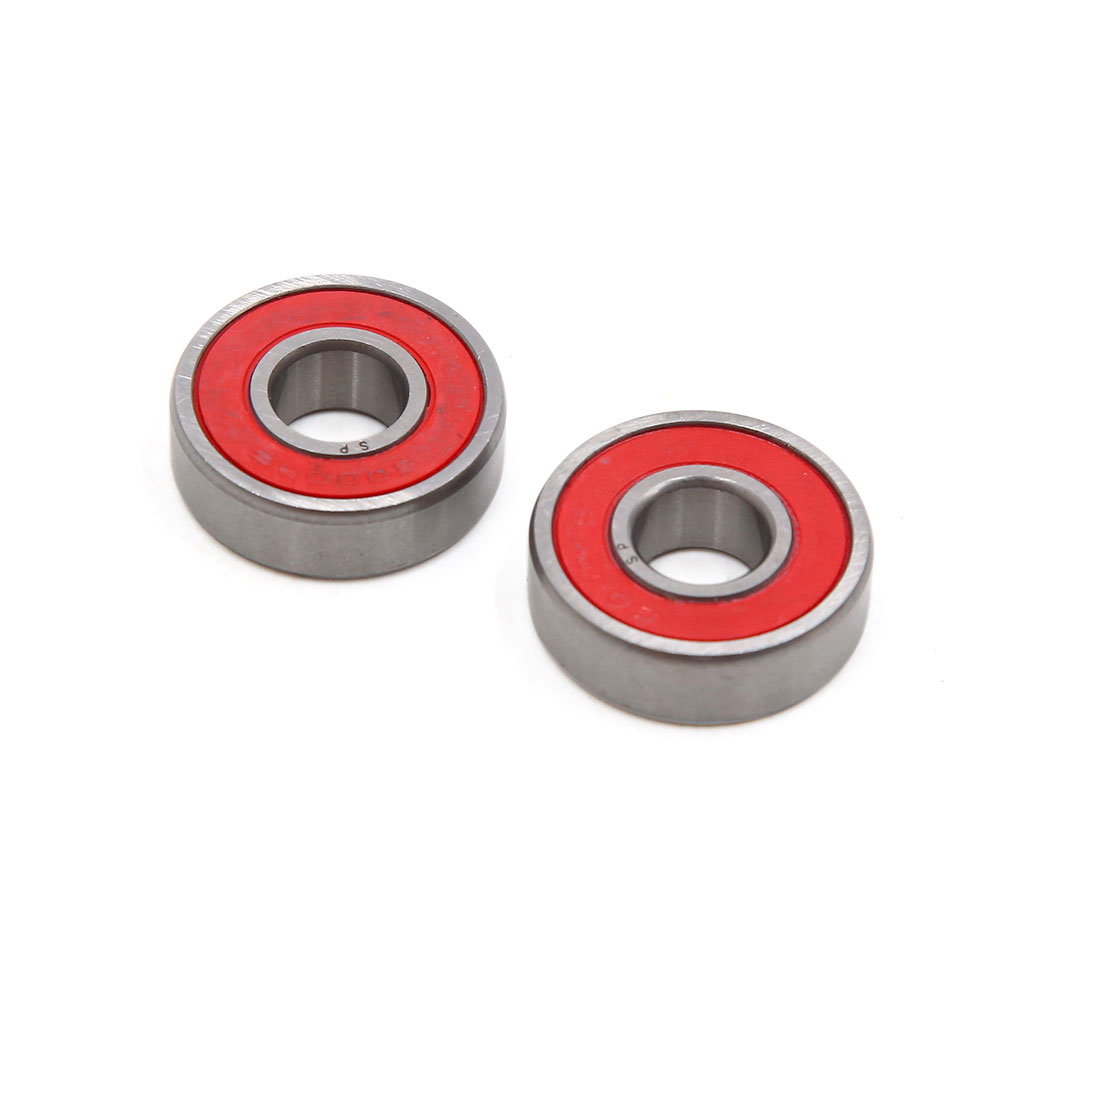 2pcs 6000-2RS Scooter Motorcycle Sealed Deep Groove Ball Bearing 26 x 10 x 8mm